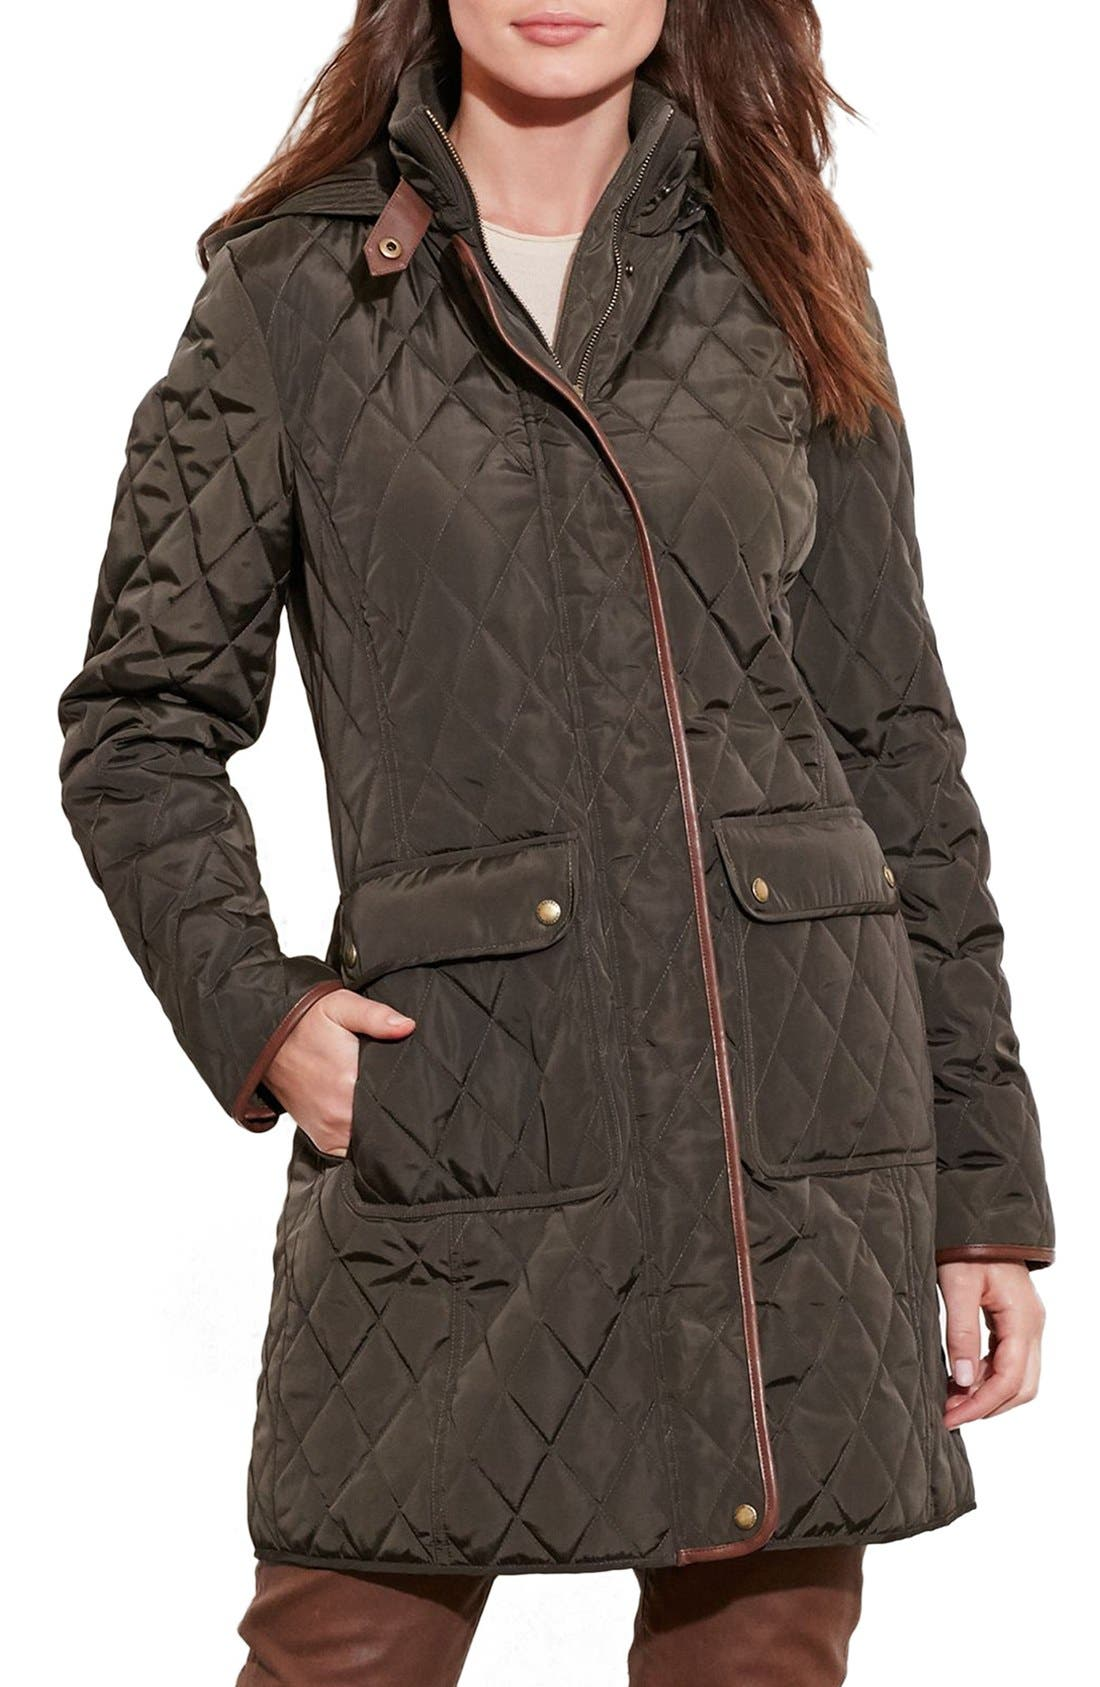 Diamond Quilted Coat with Faux Leather Trim,                             Main thumbnail 1, color,                             Dark Moss